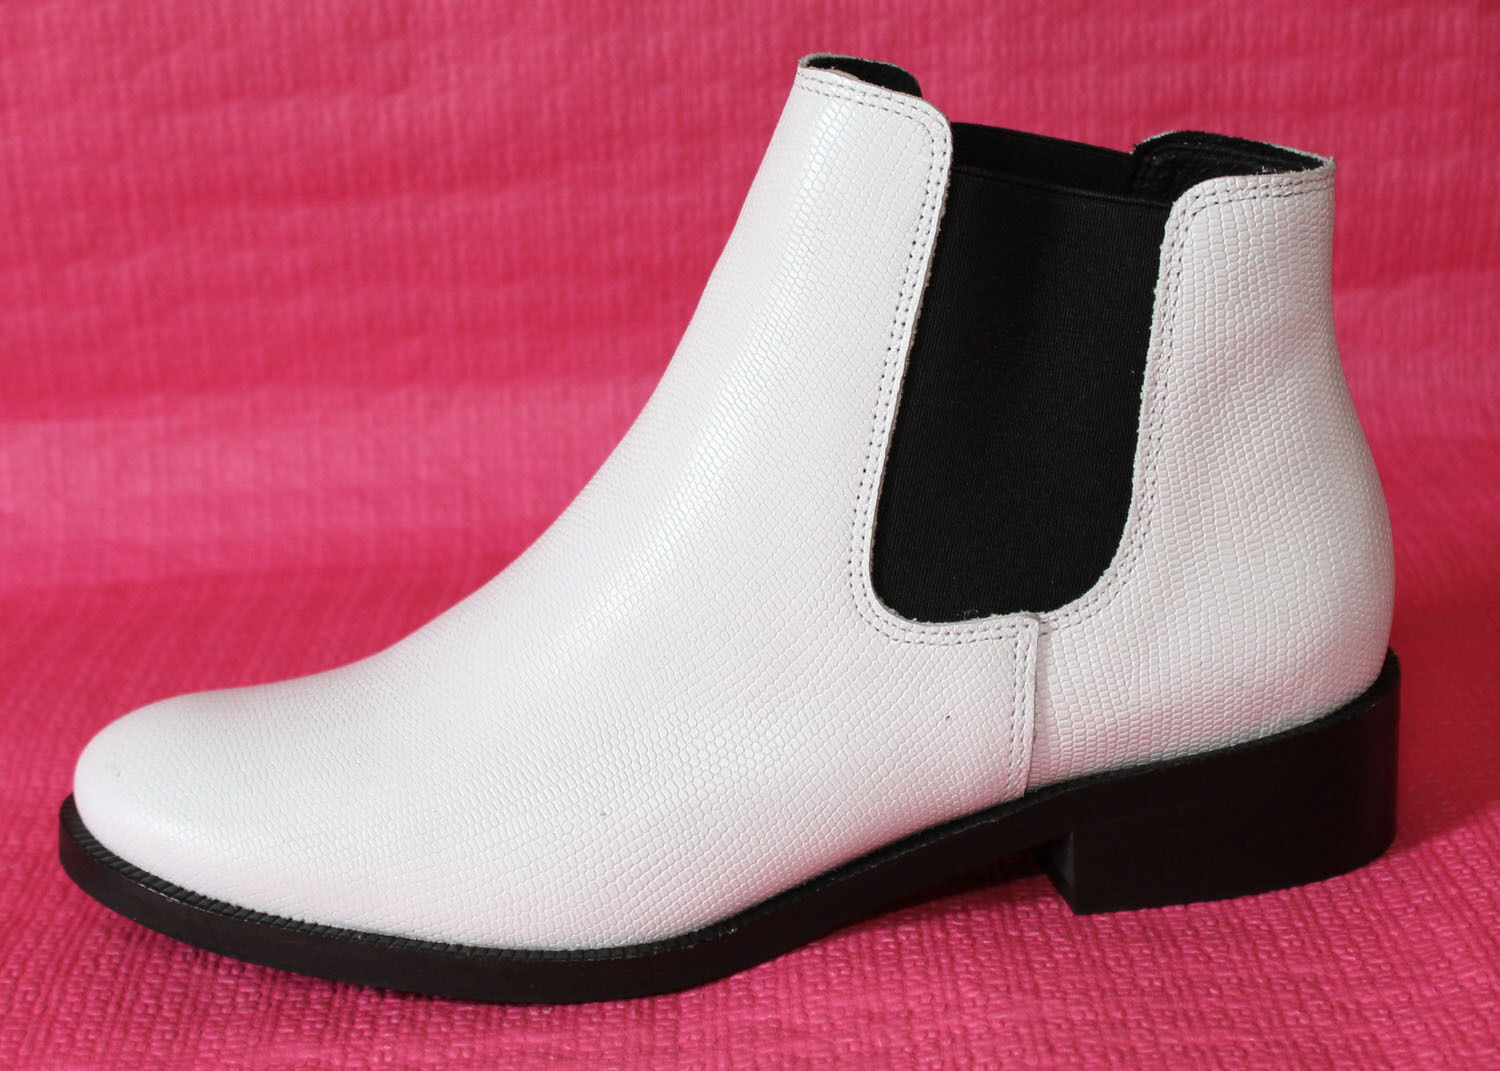 "Woman Booties Leather Chelsea White Leather Trend 2019 "" Zign "" T 40 New"